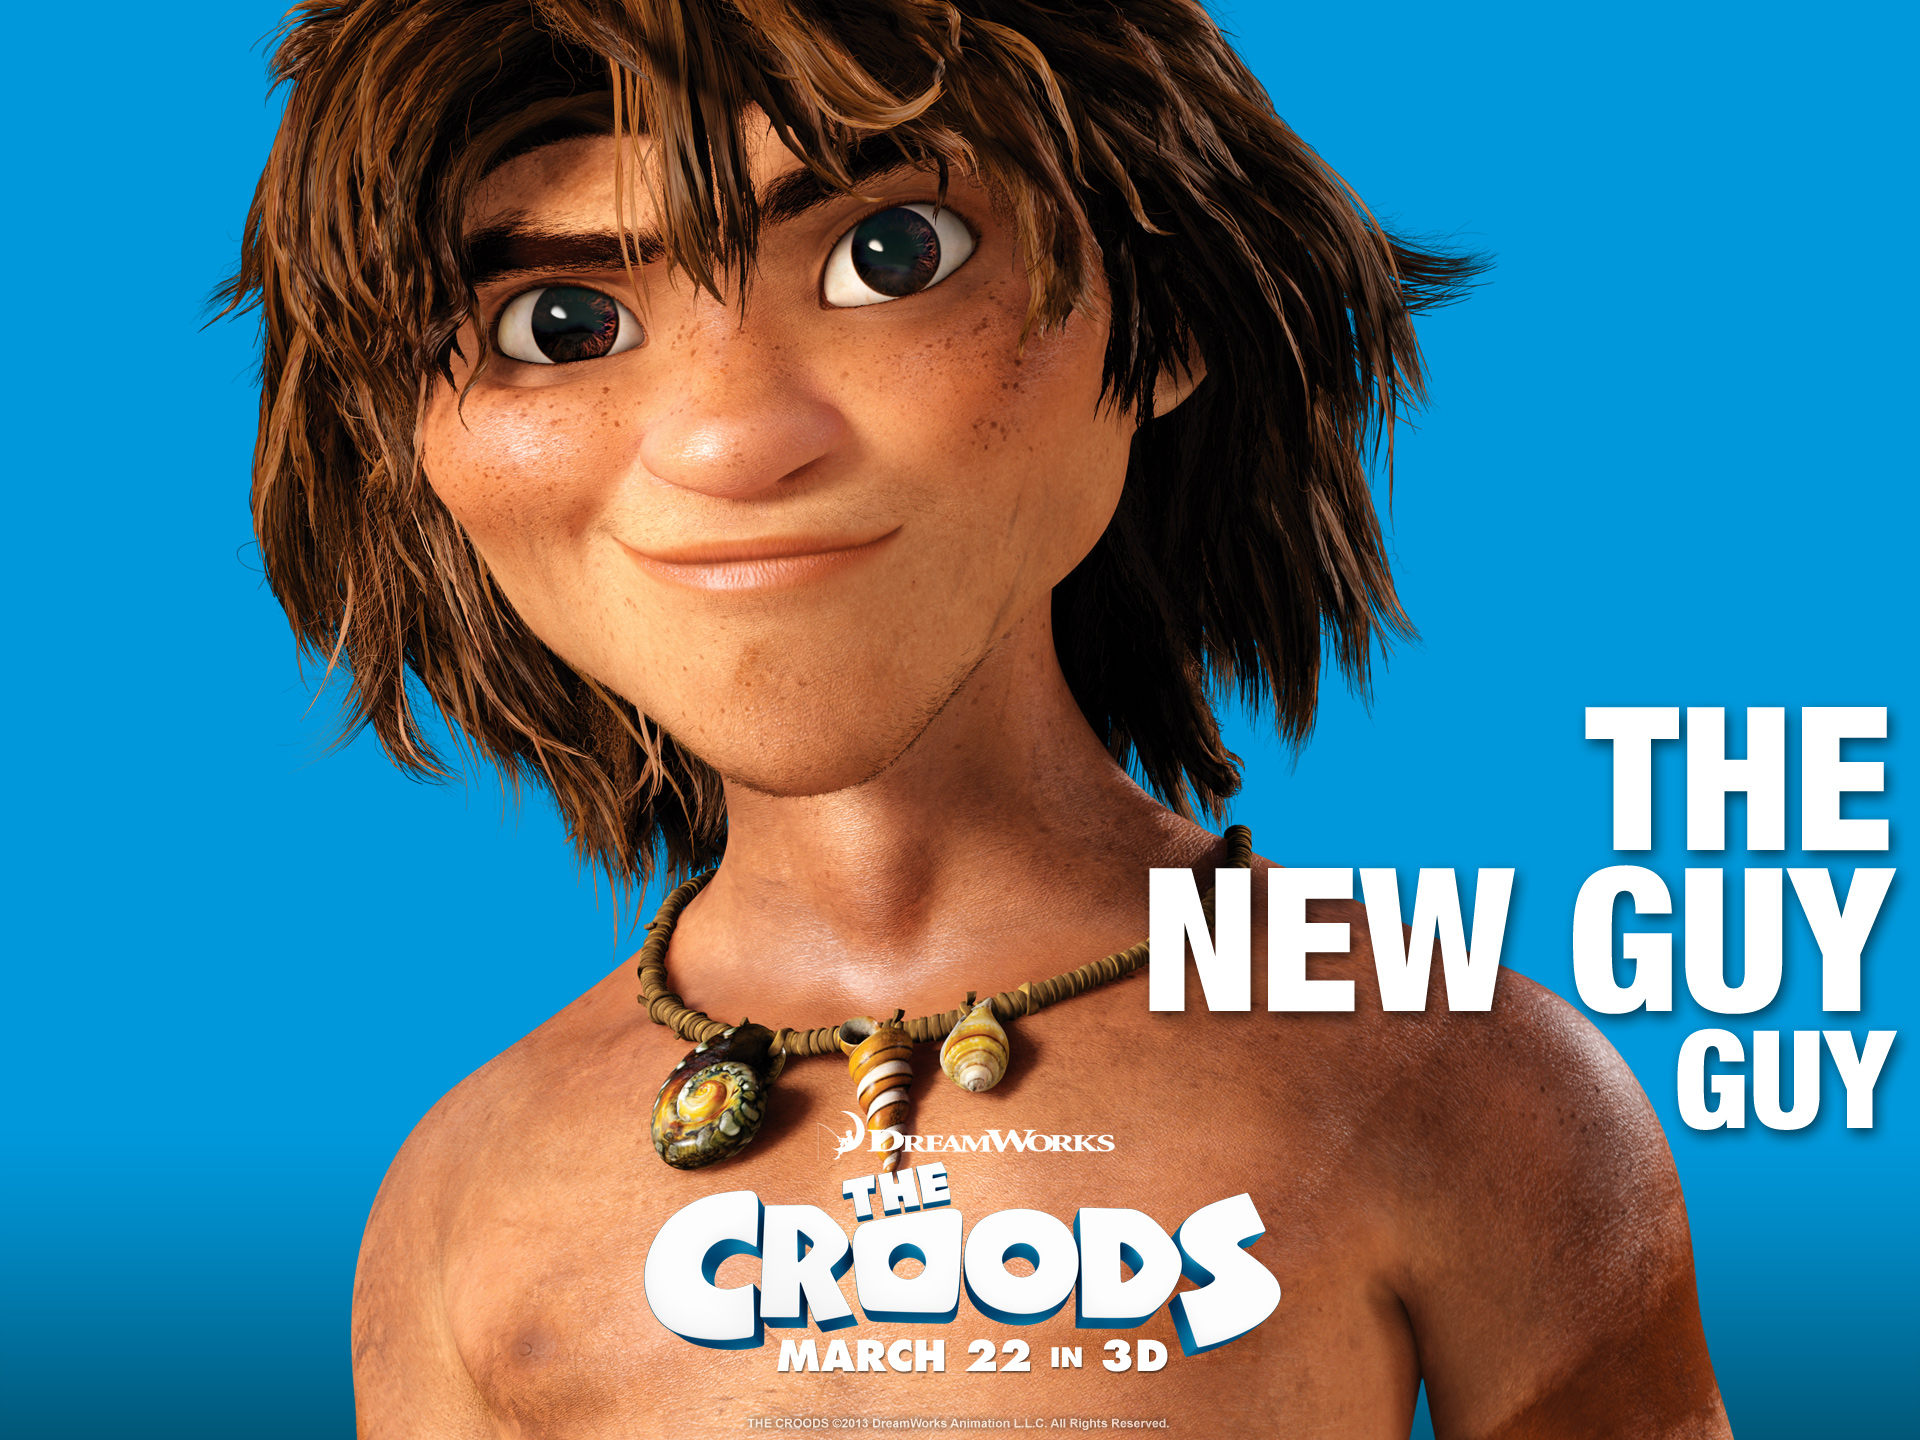 the croods full hd wallpaper and background image | 1920x1440 | id